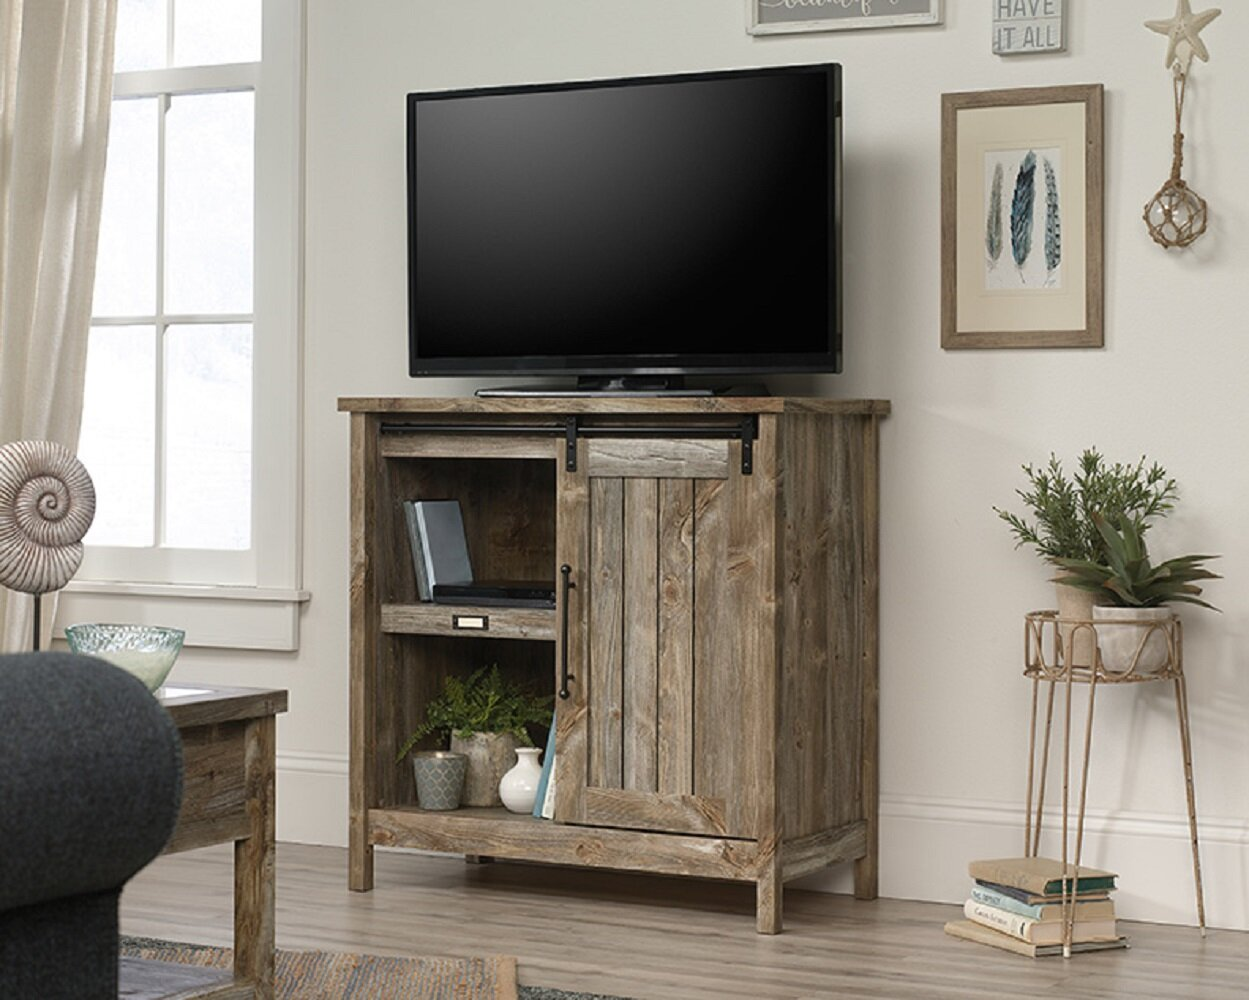 Union Rustic Mossman Tv Stand For Tvs Up To 40